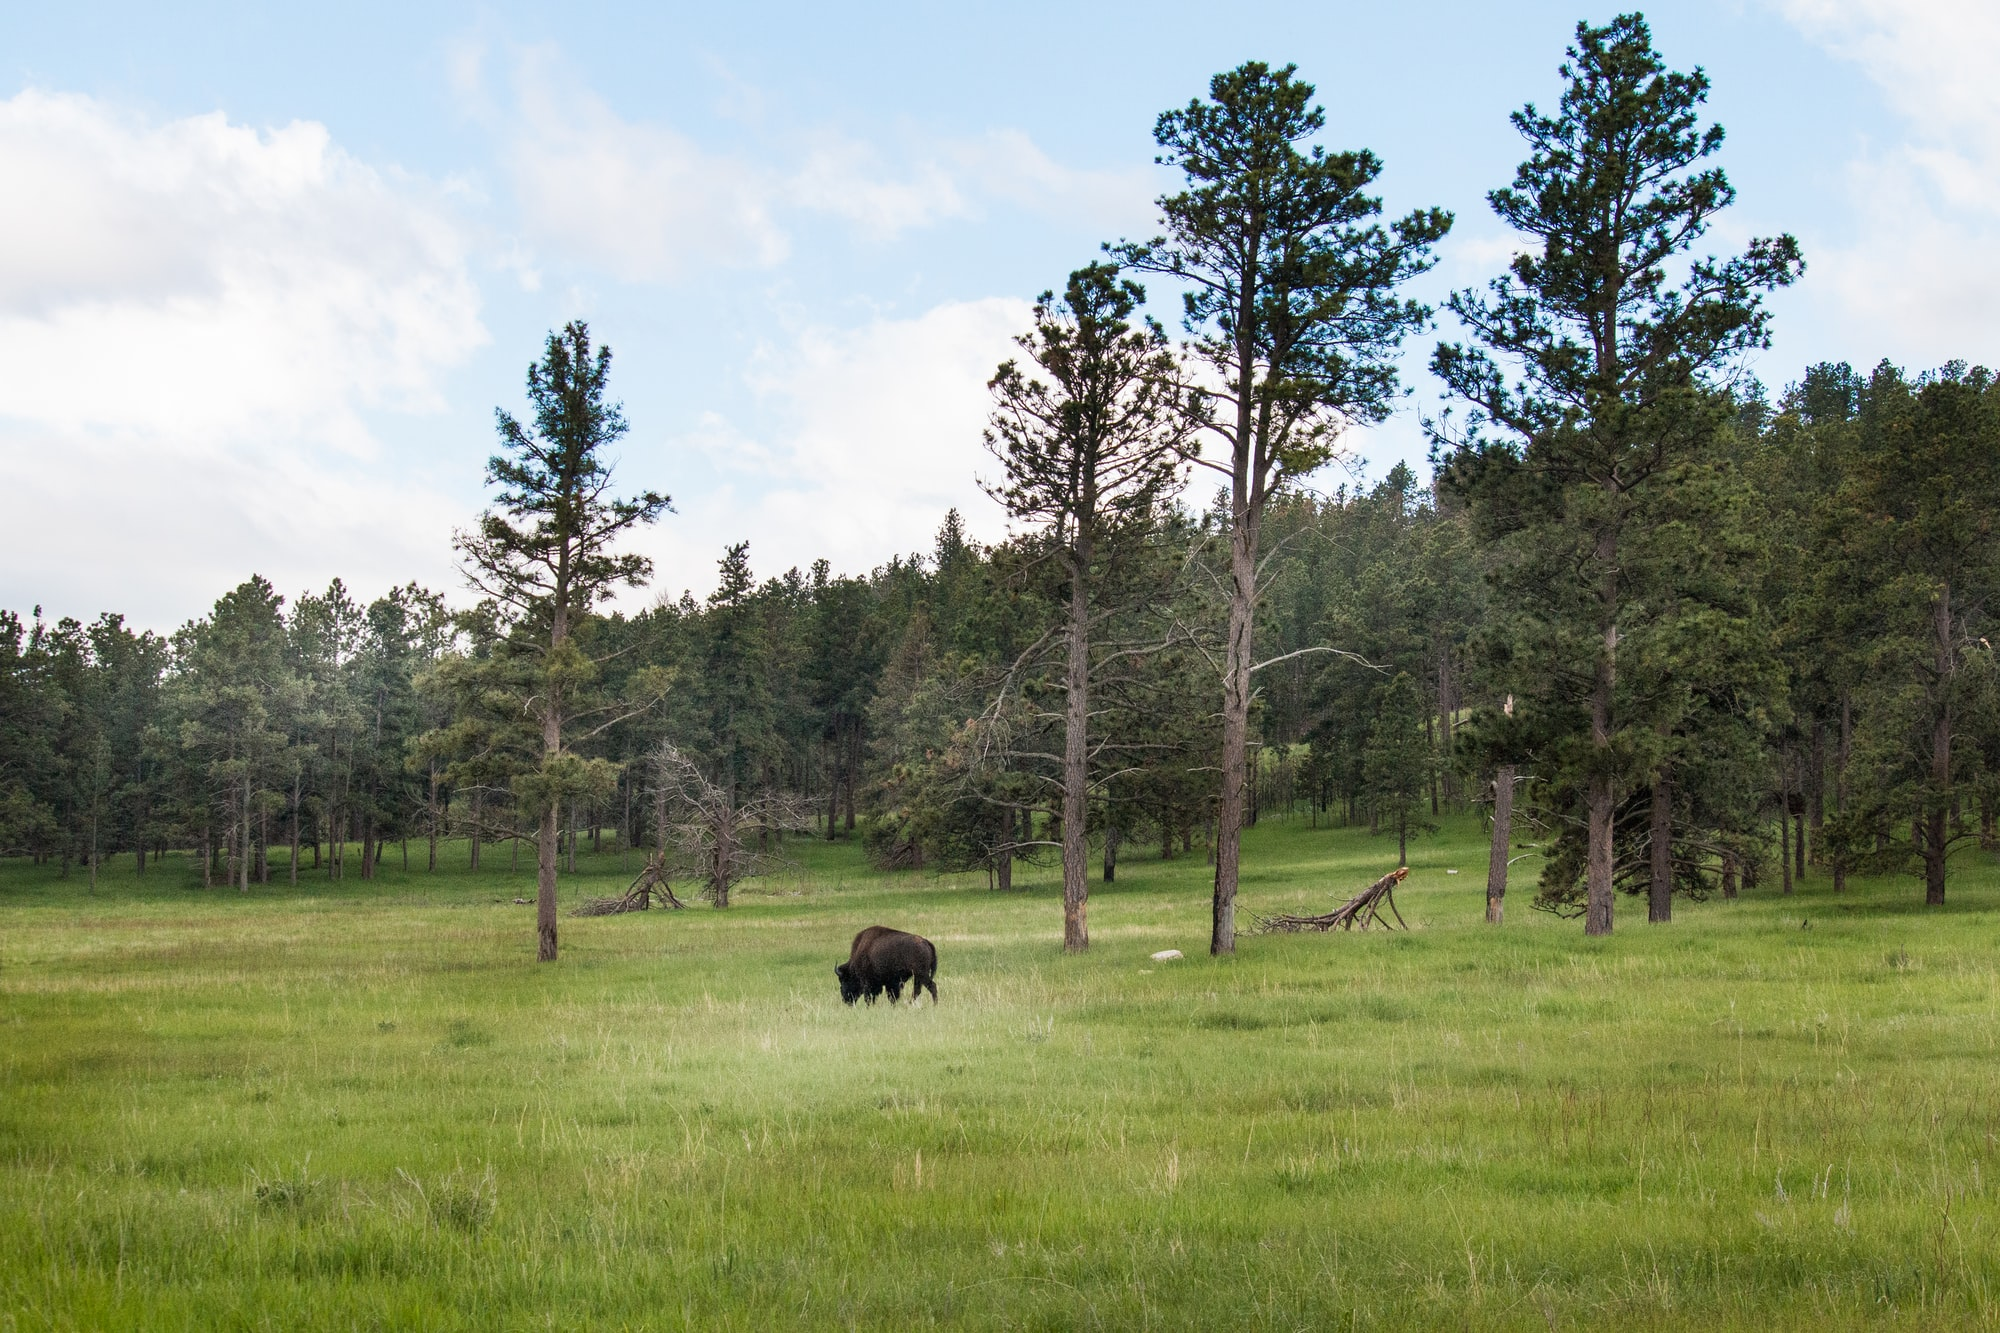 After record year, state park momentum shows no signs of stopping